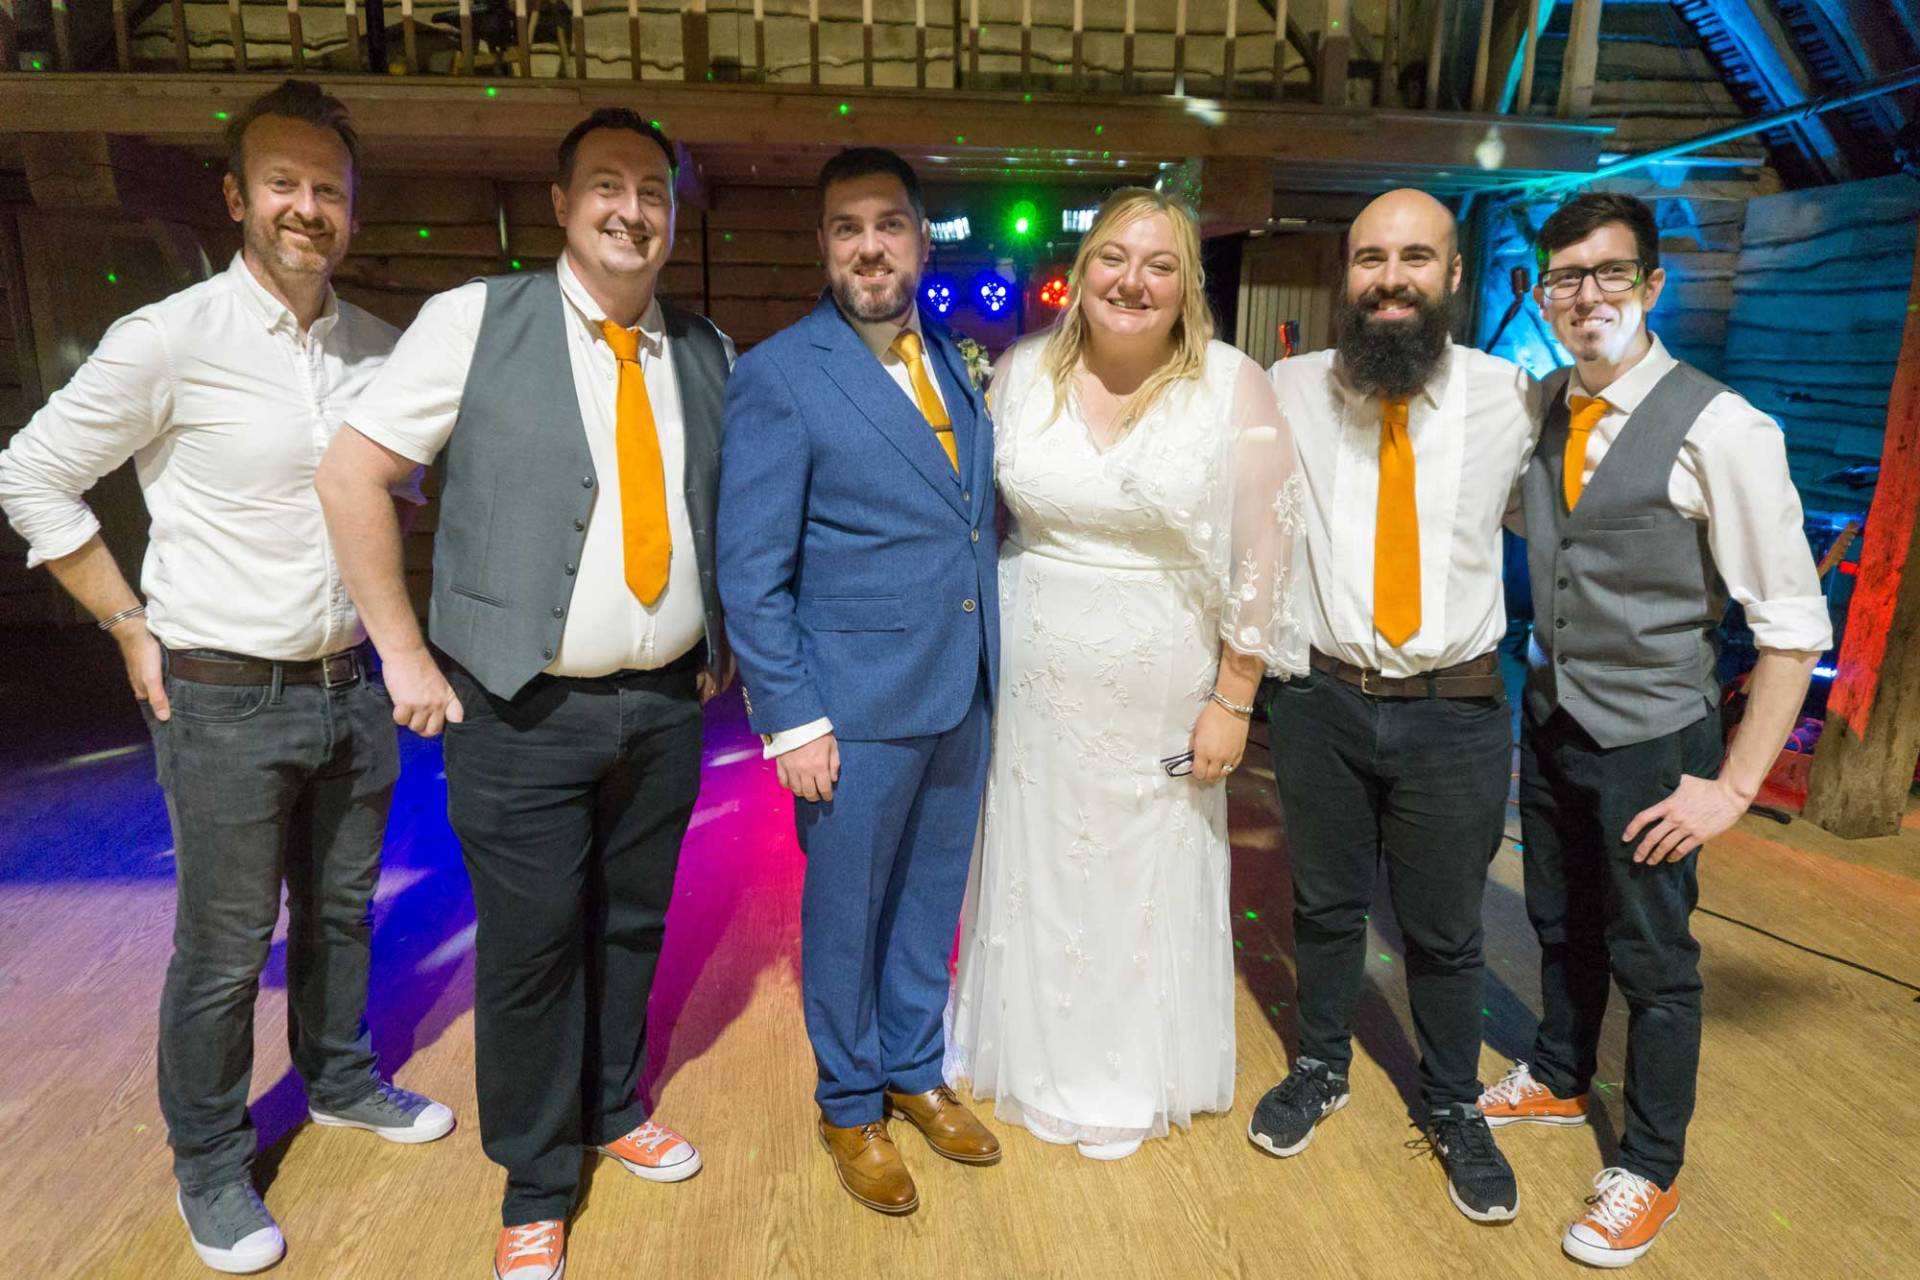 The Pocket Rockers pose with the bride and groom at their wedding at The Great Barn in Titchfield